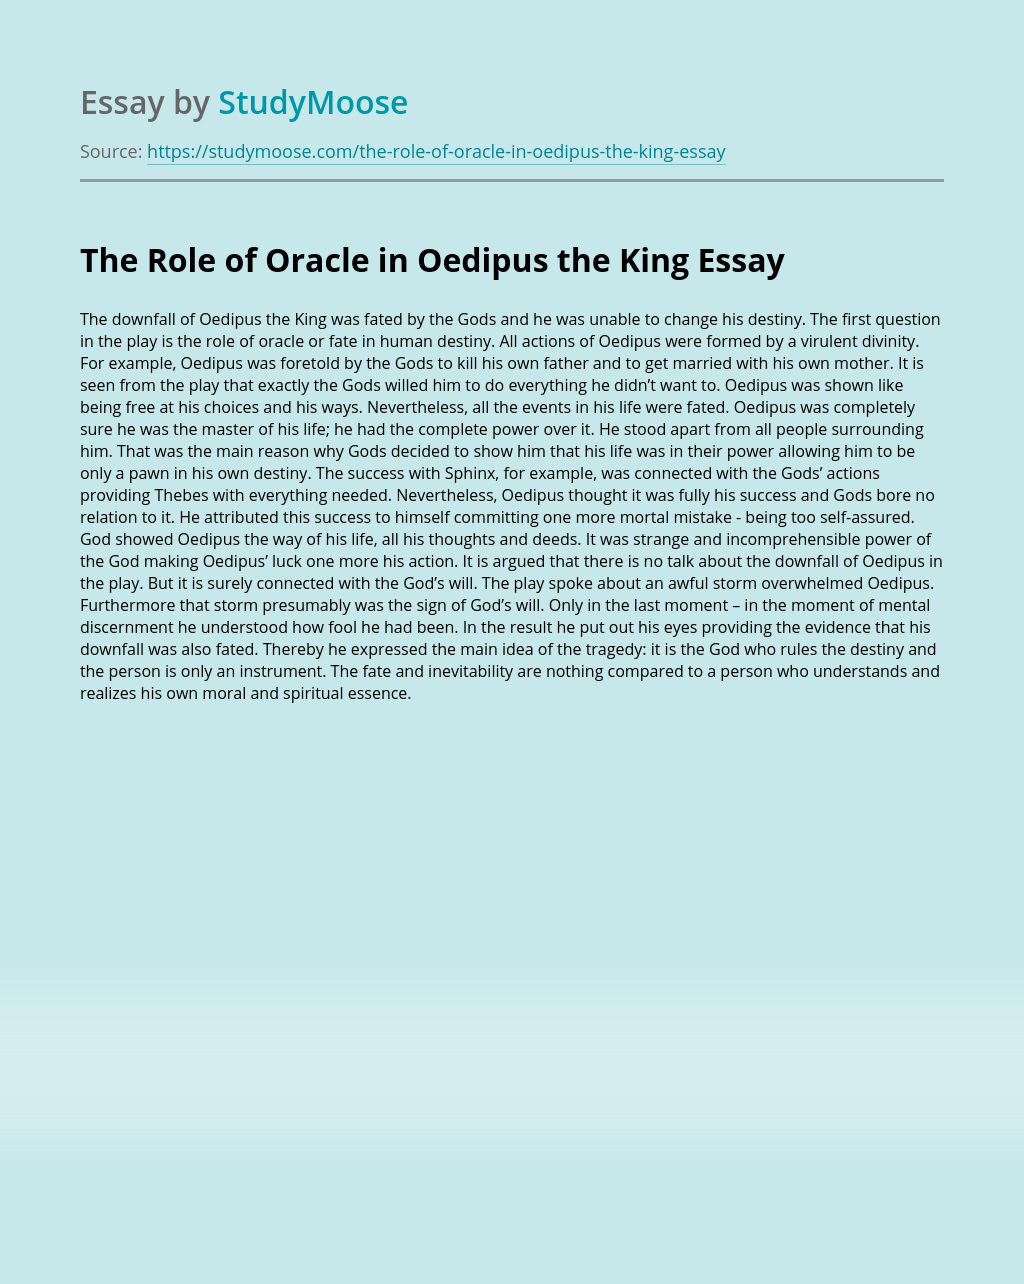 The Role of Oracle in Oedipus the King